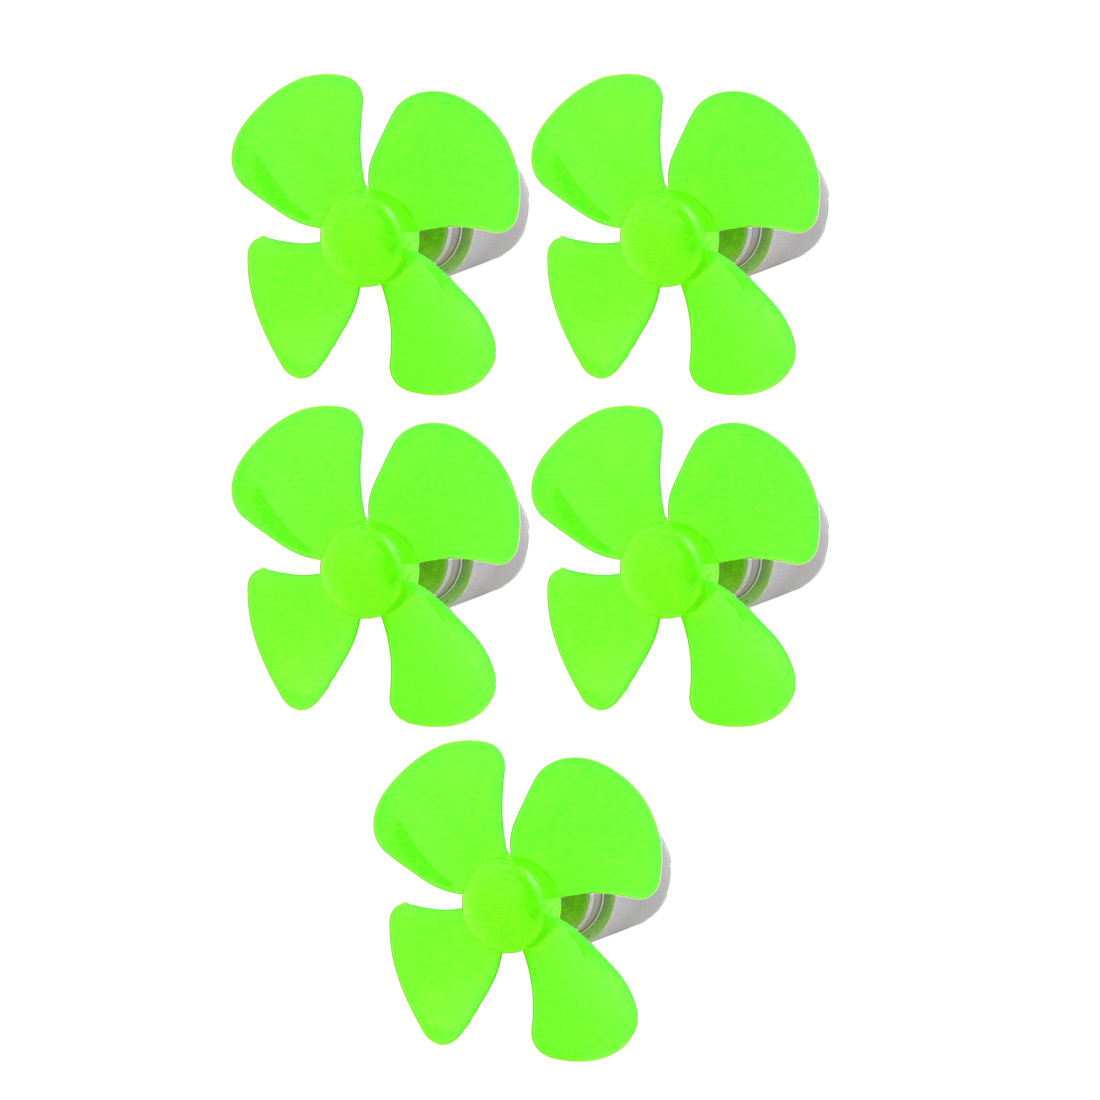 5pcs DC 1.5V 0.13A 2000RPM Strong Force Motor 4 Vanes 56mm Green Propeller for RC Aircraft